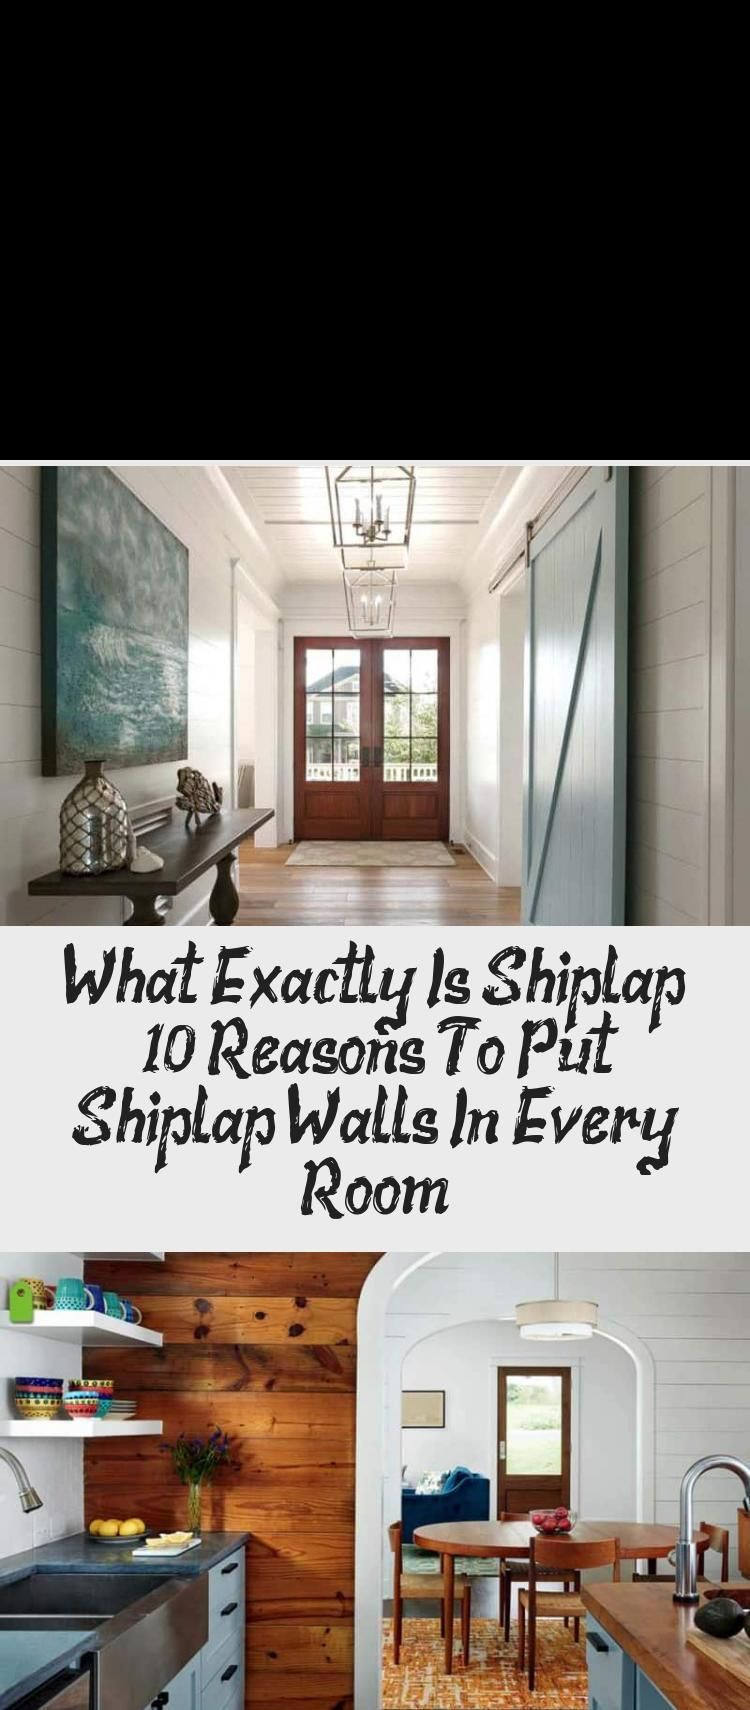 Shiplap Is A Wooden Sheathing That Is Used For The Construction Of Sheds And Other Forms Of Buildings It Is Most In 2020 Ship Lap Walls Shiplap Rustic Houses Exterior